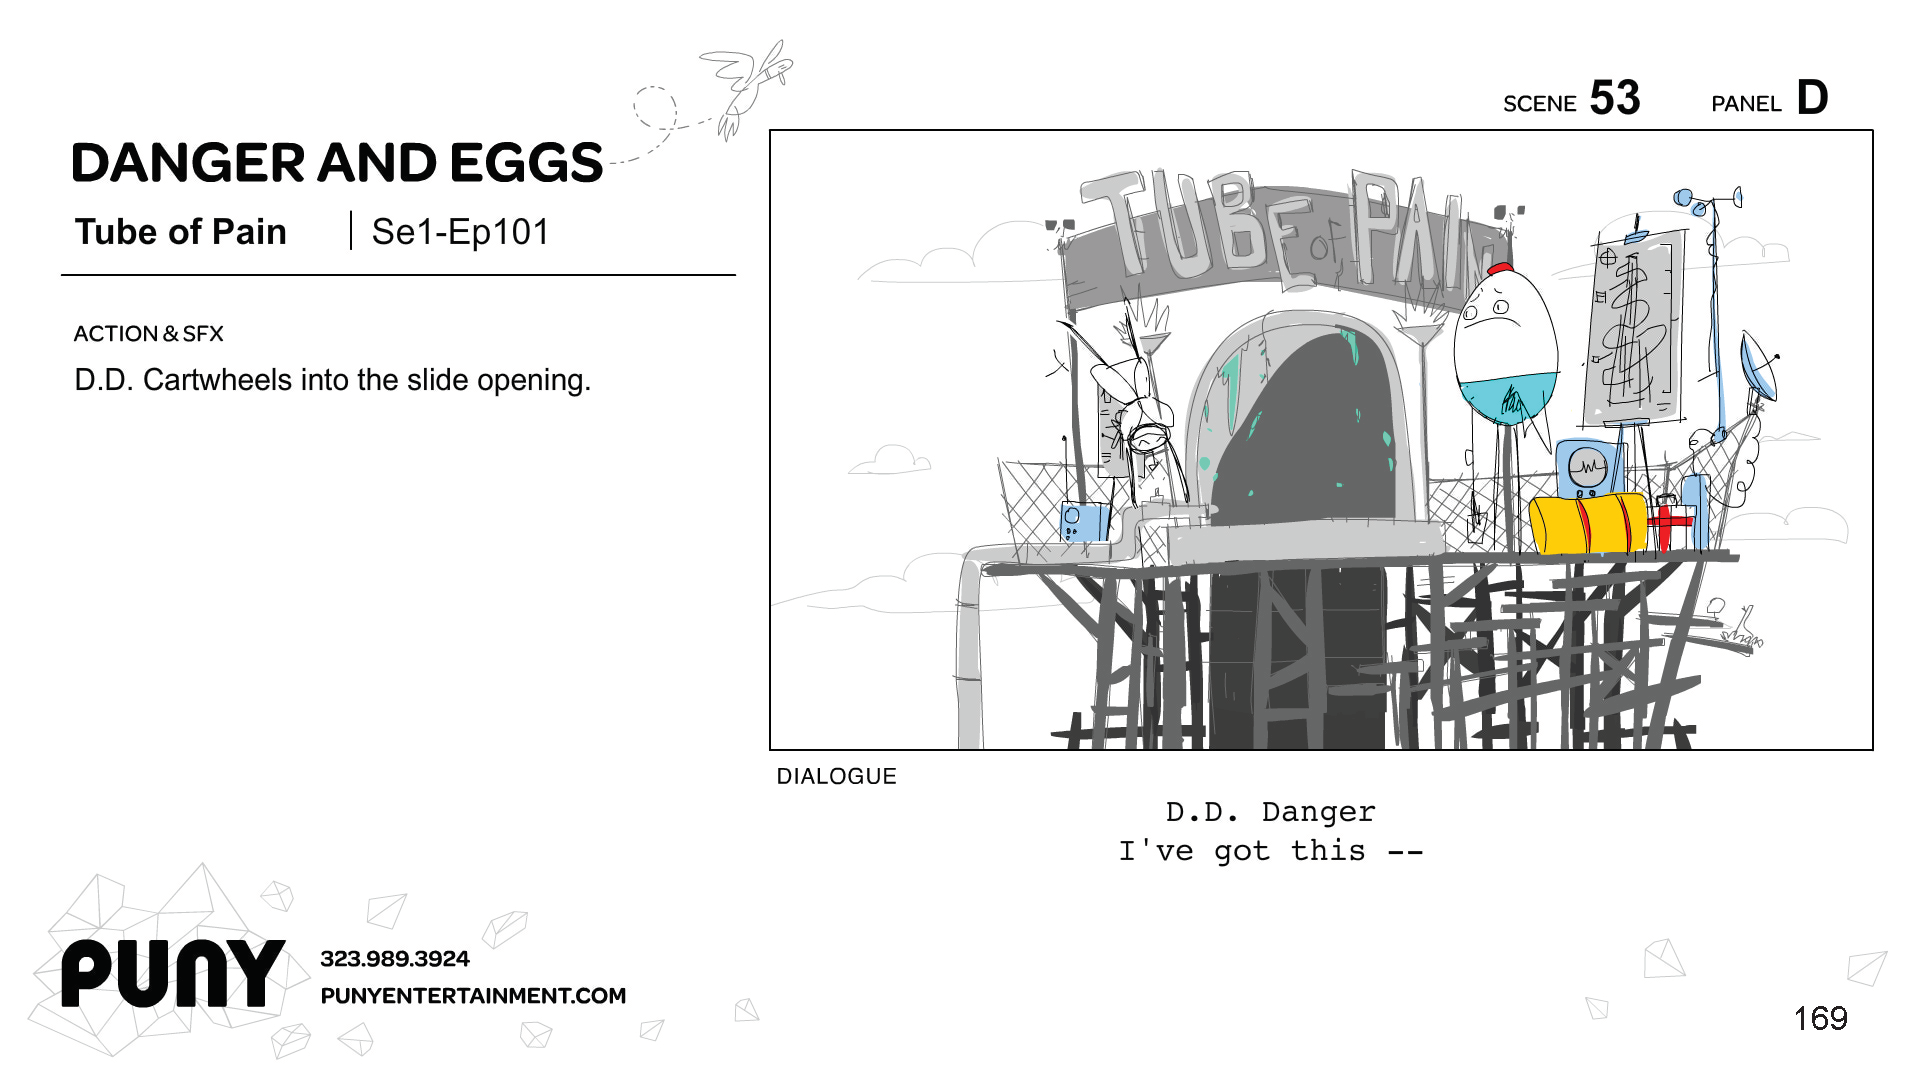 MikeOwens_STORYBOARDS_DangerAndEggs_Page_169.png